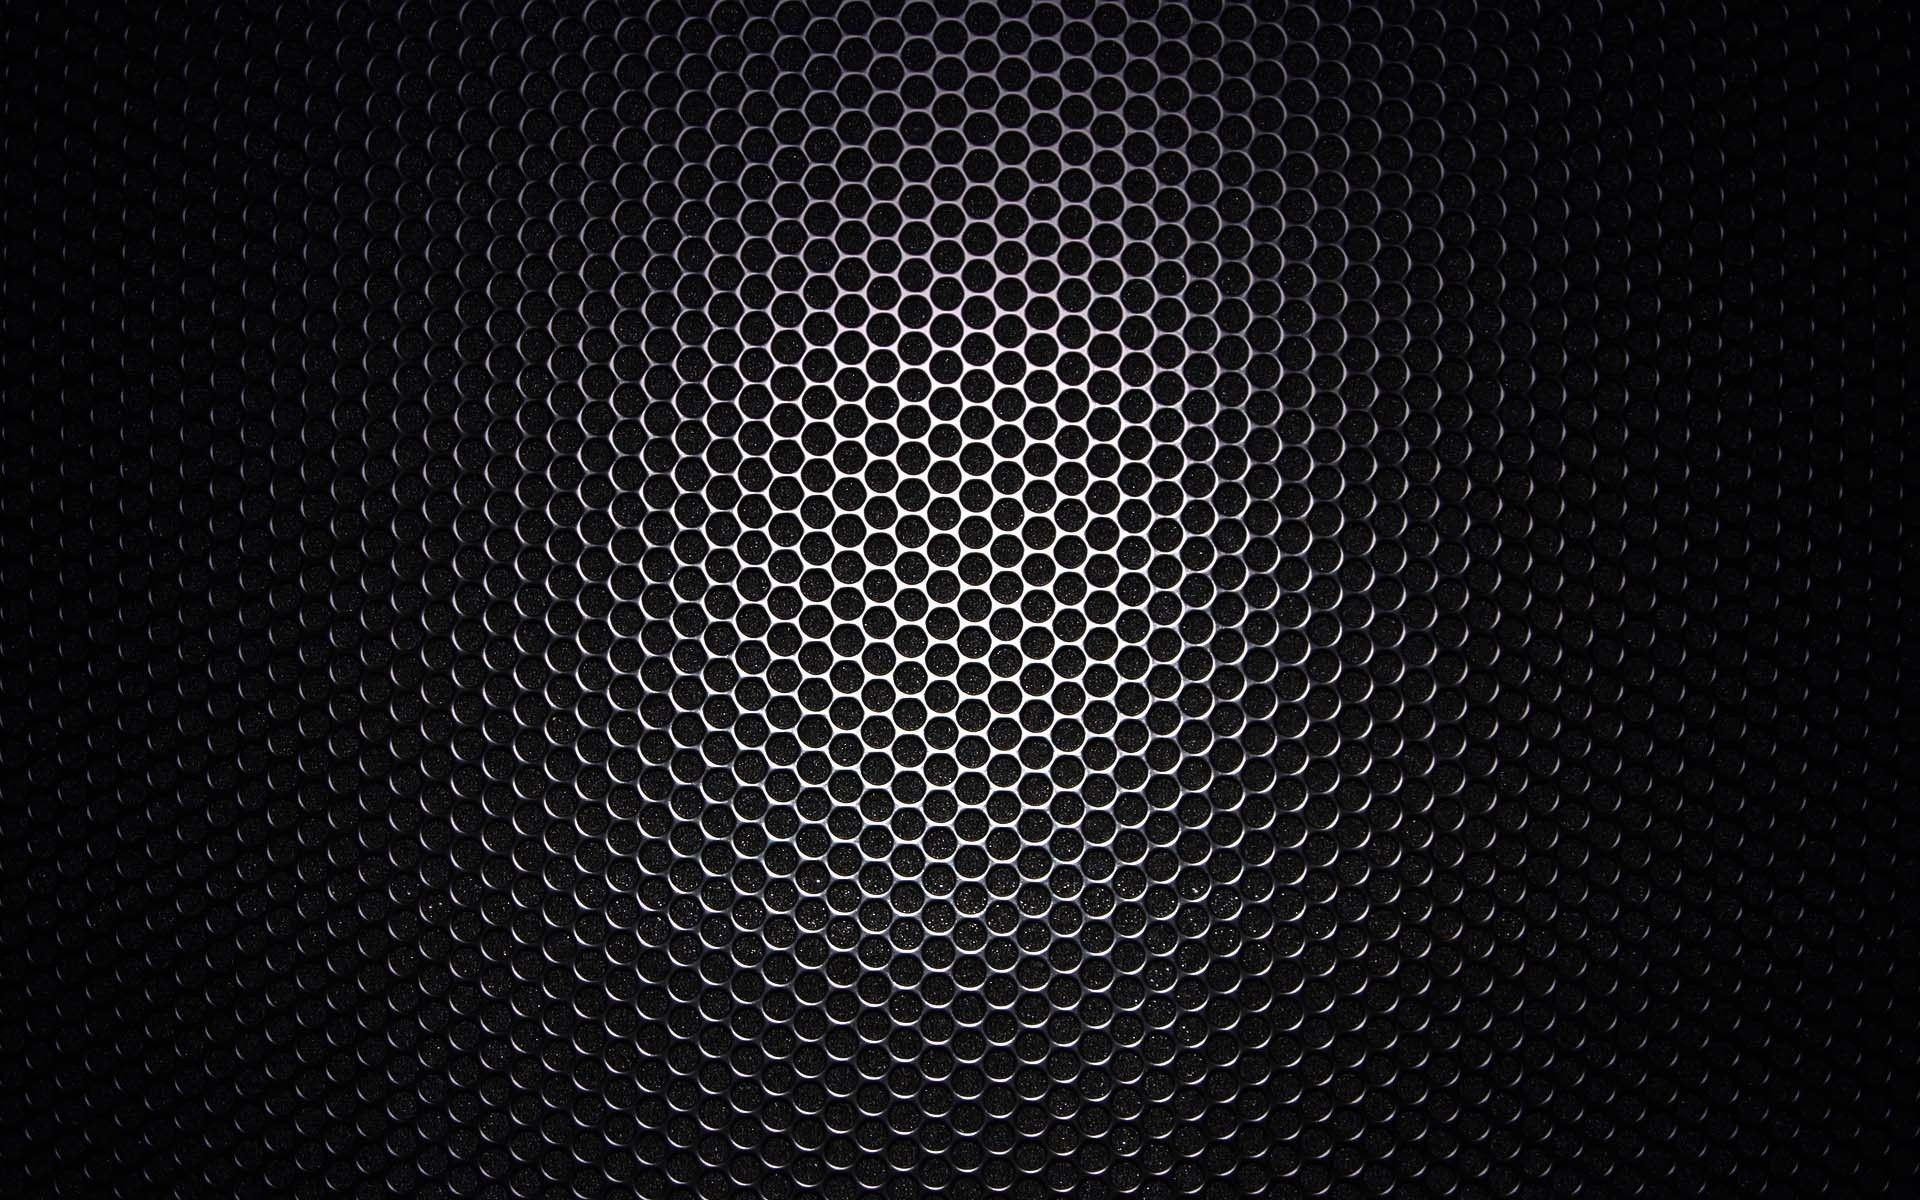 Hd Metal Wallpapers Metallic Backgrounds For Free Desktop Download Full Black Wallpaper Black Background Wallpaper Pure Black Wallpaper